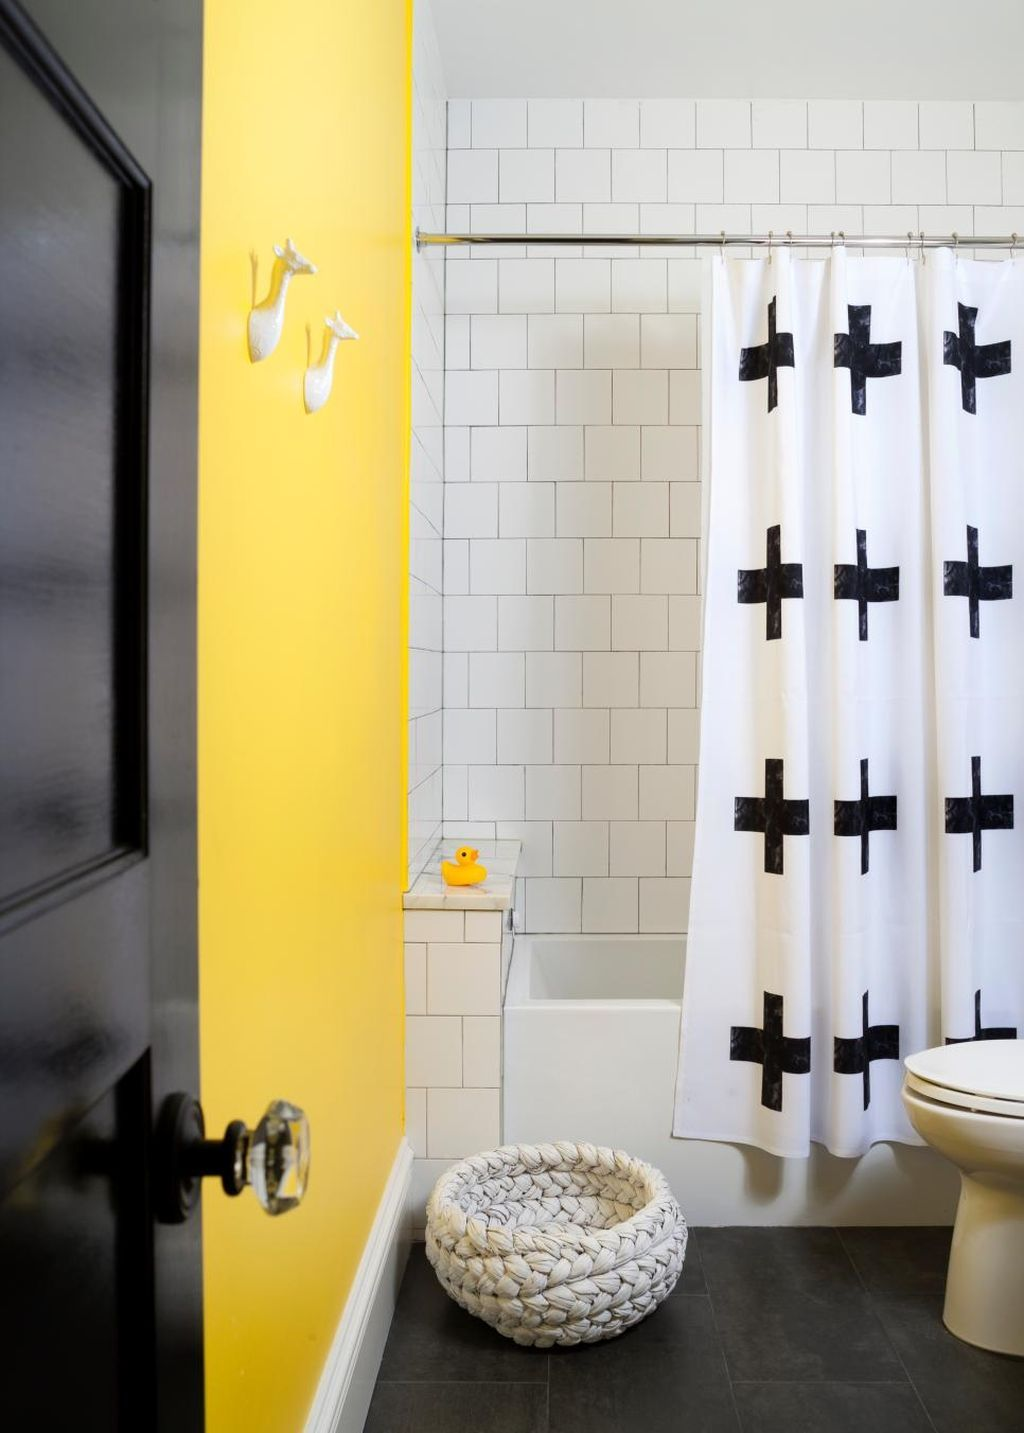 96+ Beautiful Black And White Shower Curtains Design Ideas | White ...